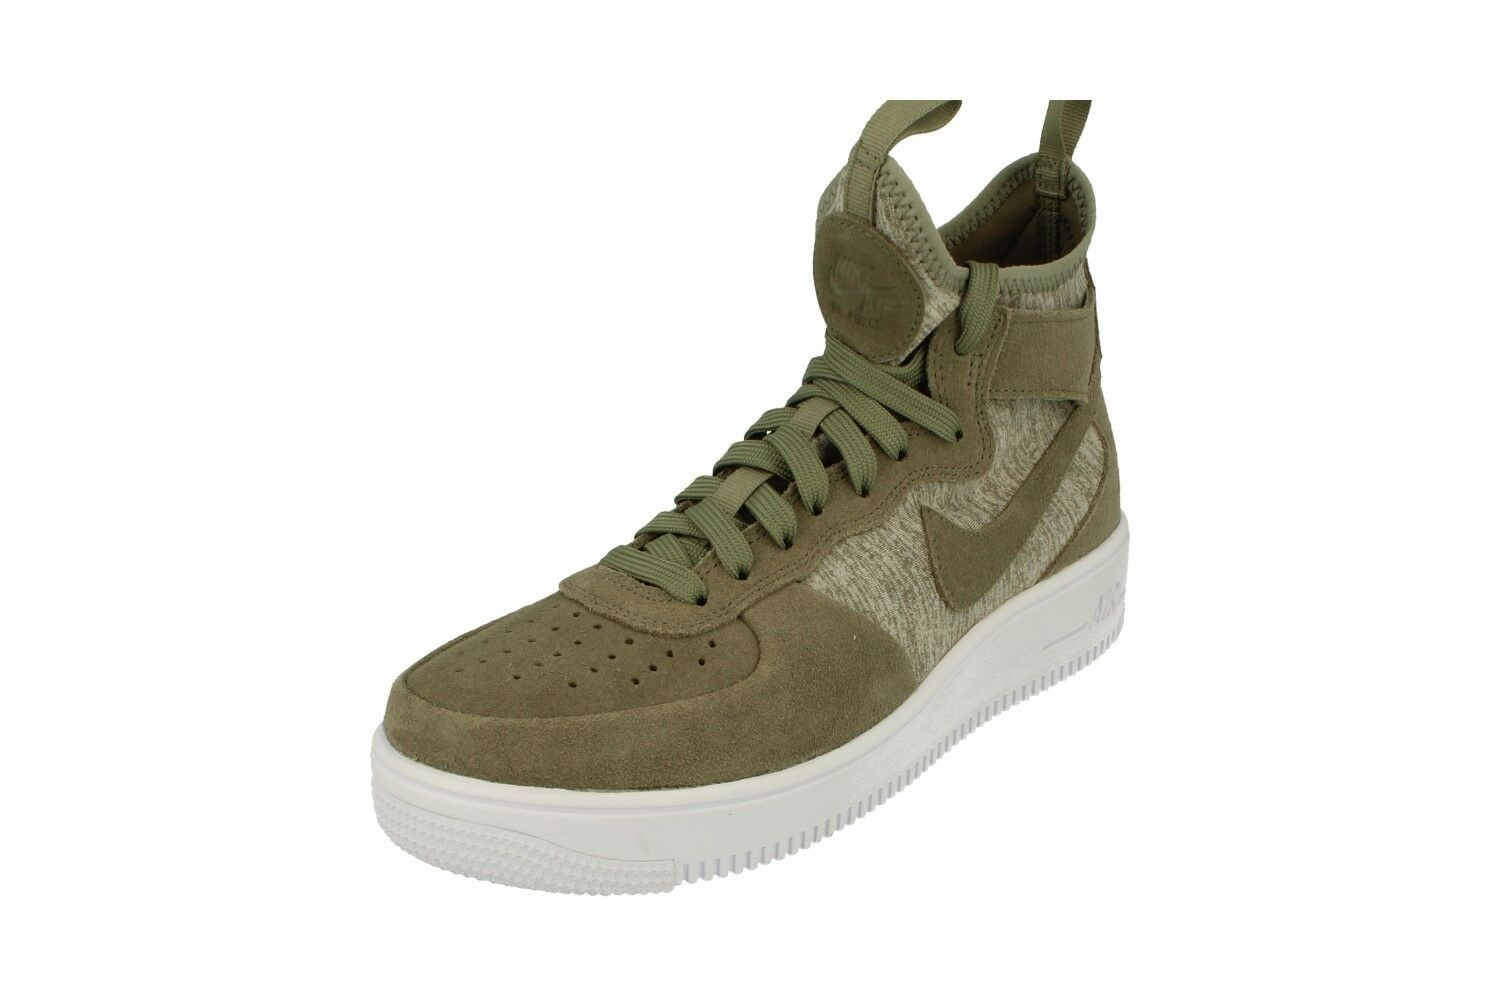 Nike Air Force 1 Ultraforce Mi Prm Baskets Montés pour Hommes 921126 Baskets 002